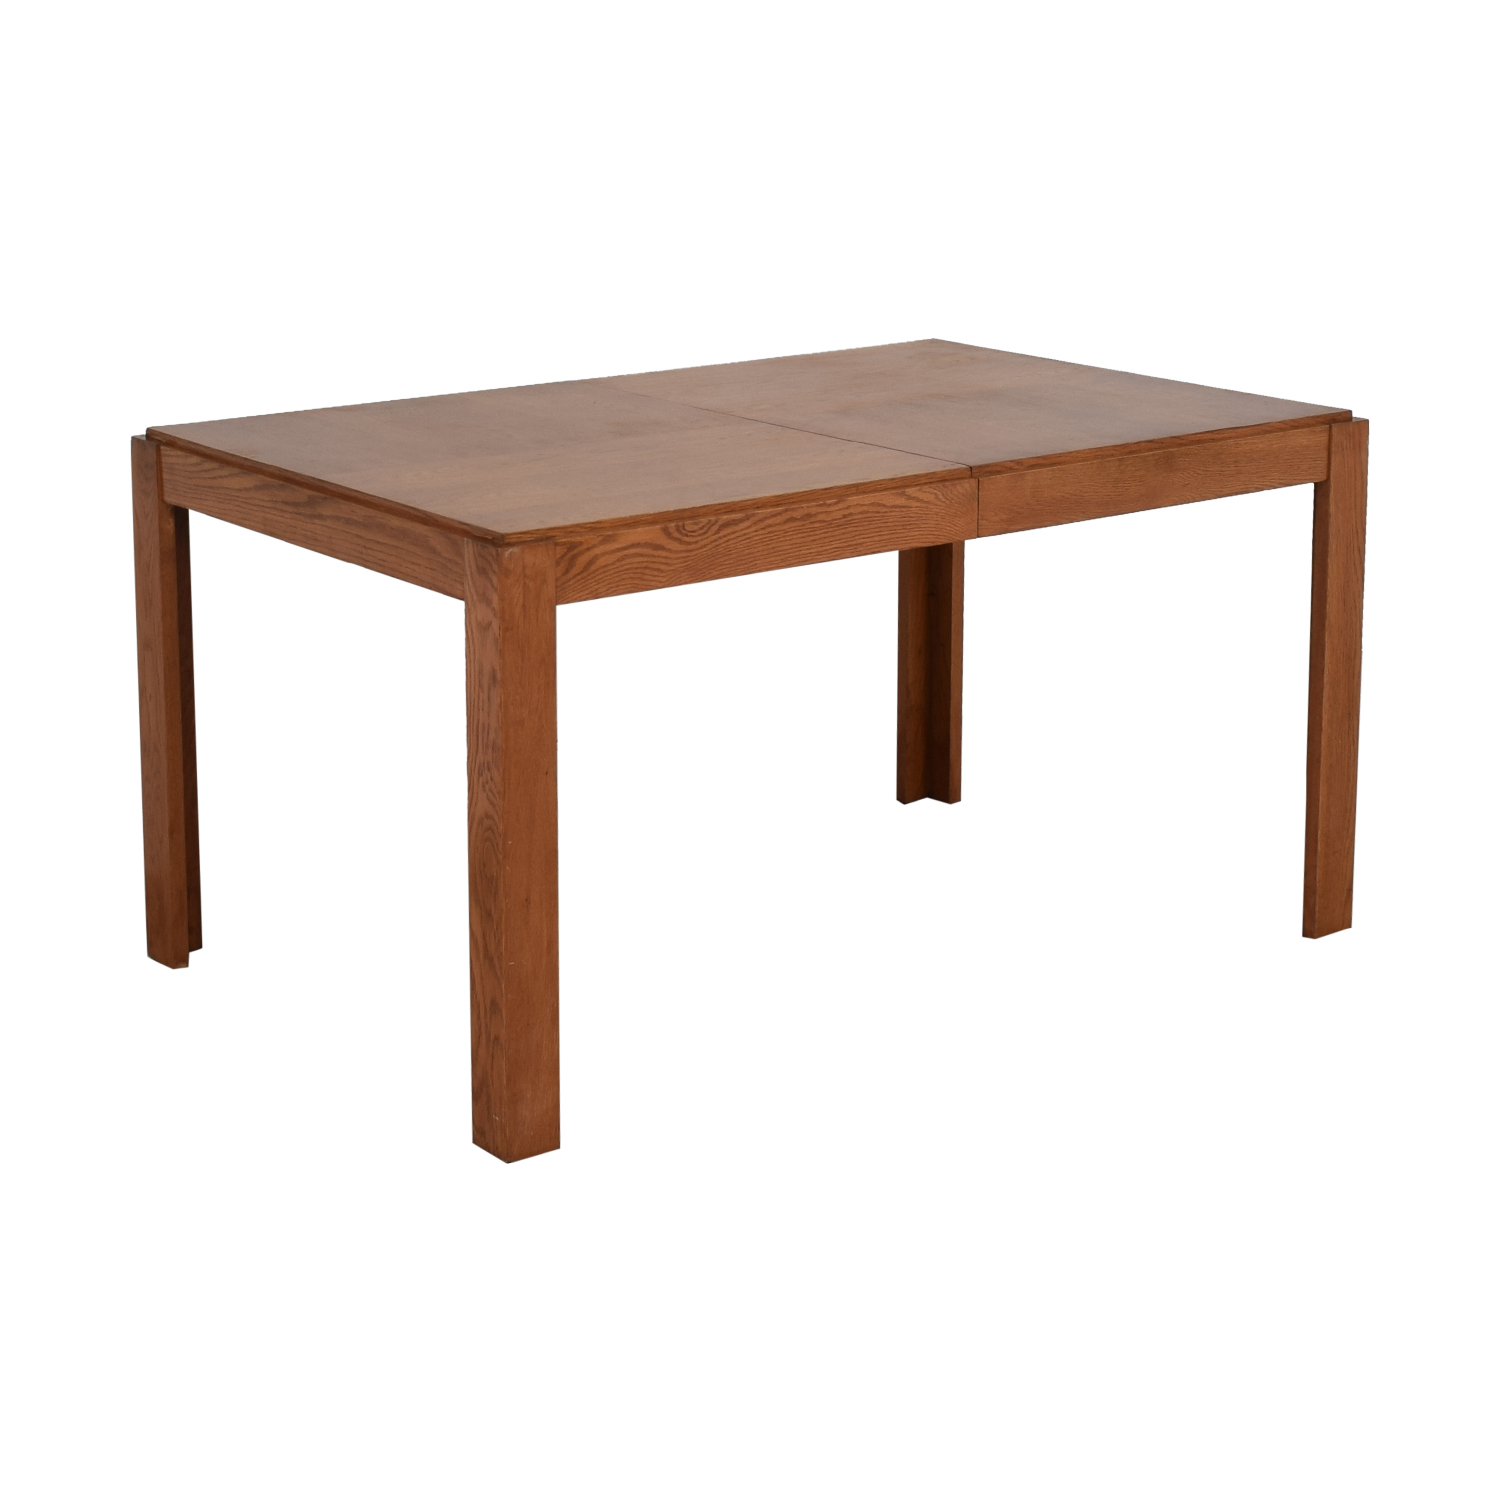 Bernhardt Bernhardt Extension Dining Table nj